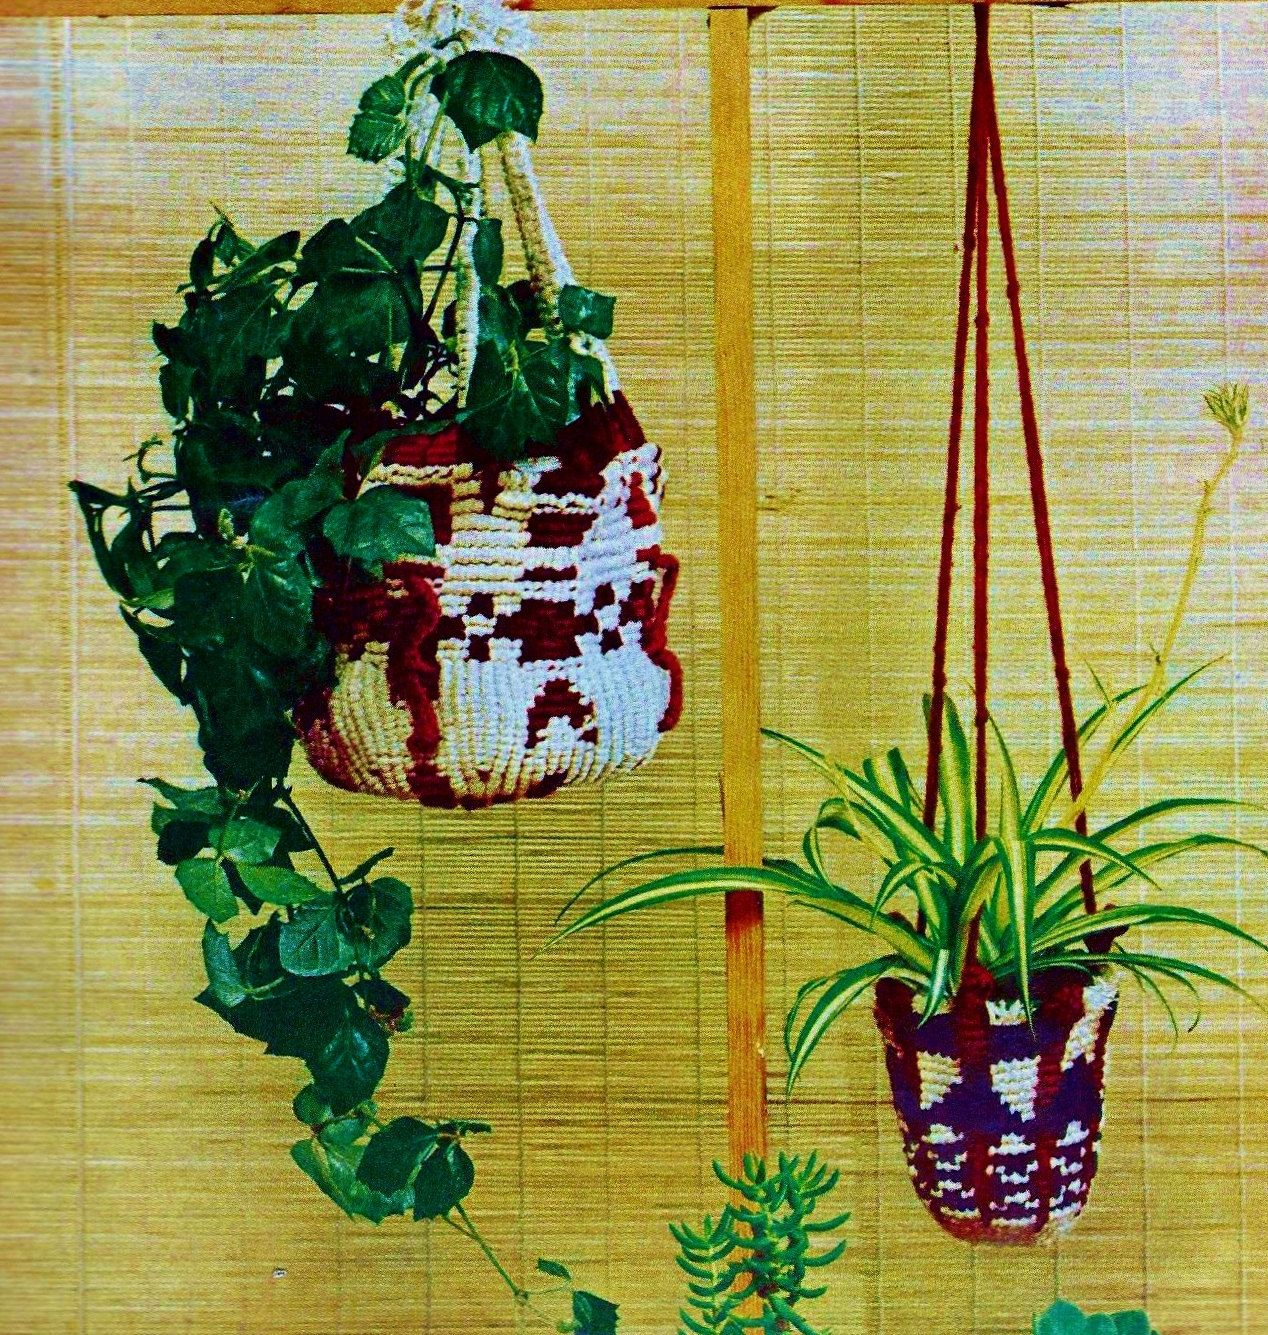 Native American Style Macrame Plant Pot Covers with Hanging Cords PDF Macrame Patterns by MomentsInTwine on Etsy